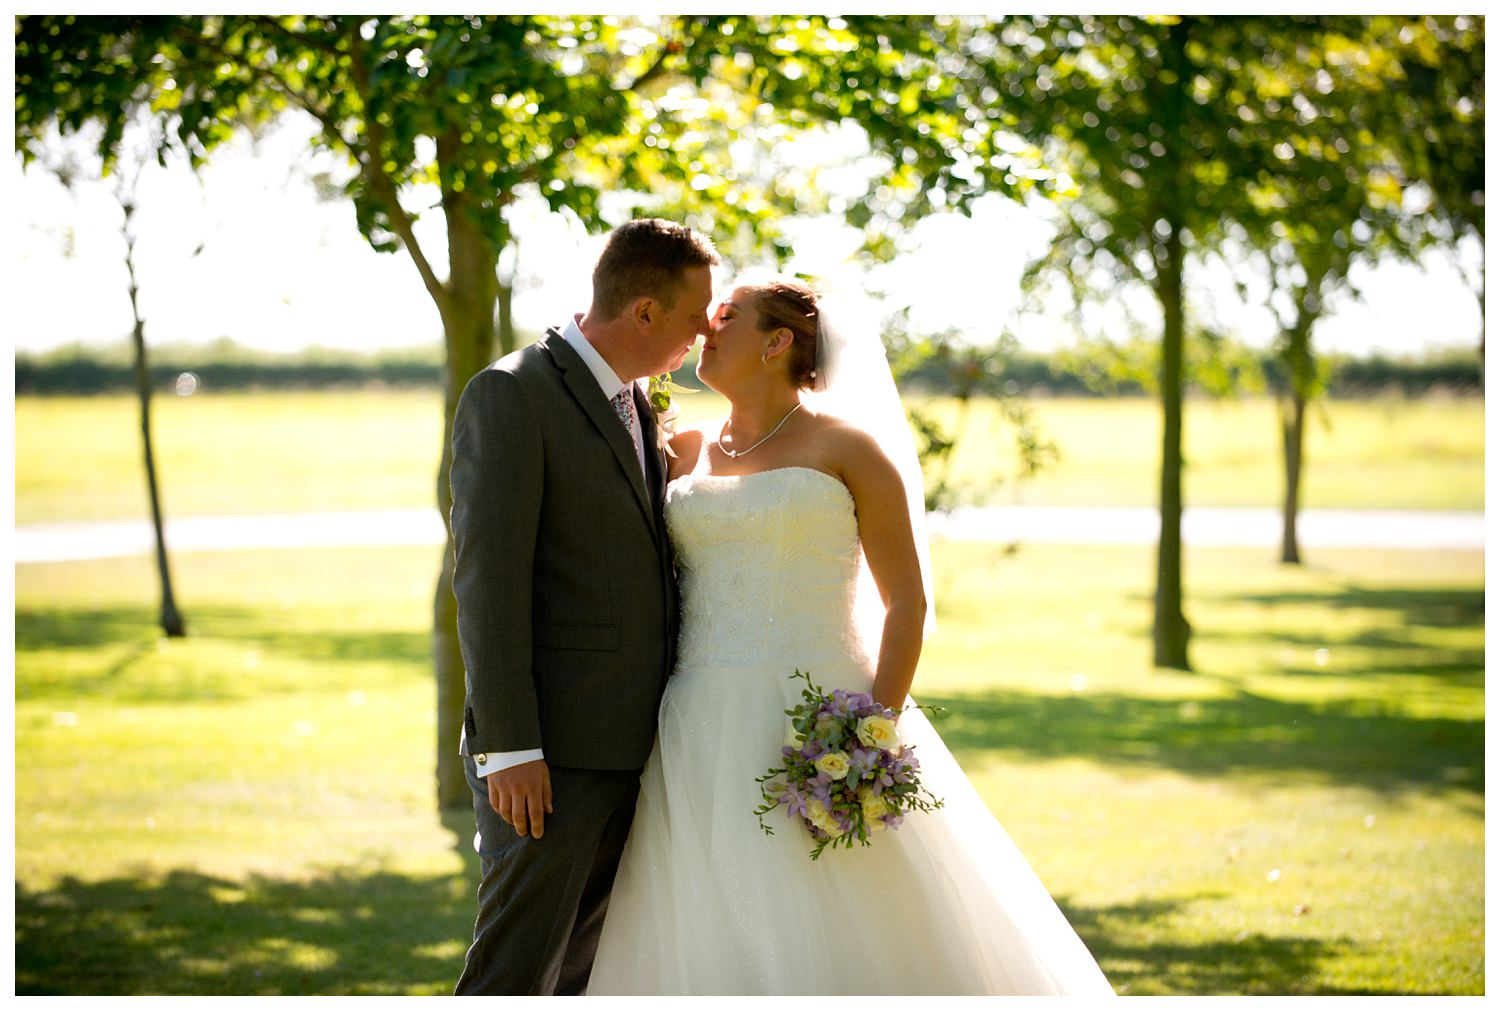 Burntwood-Court-Wedding-Photography_0031